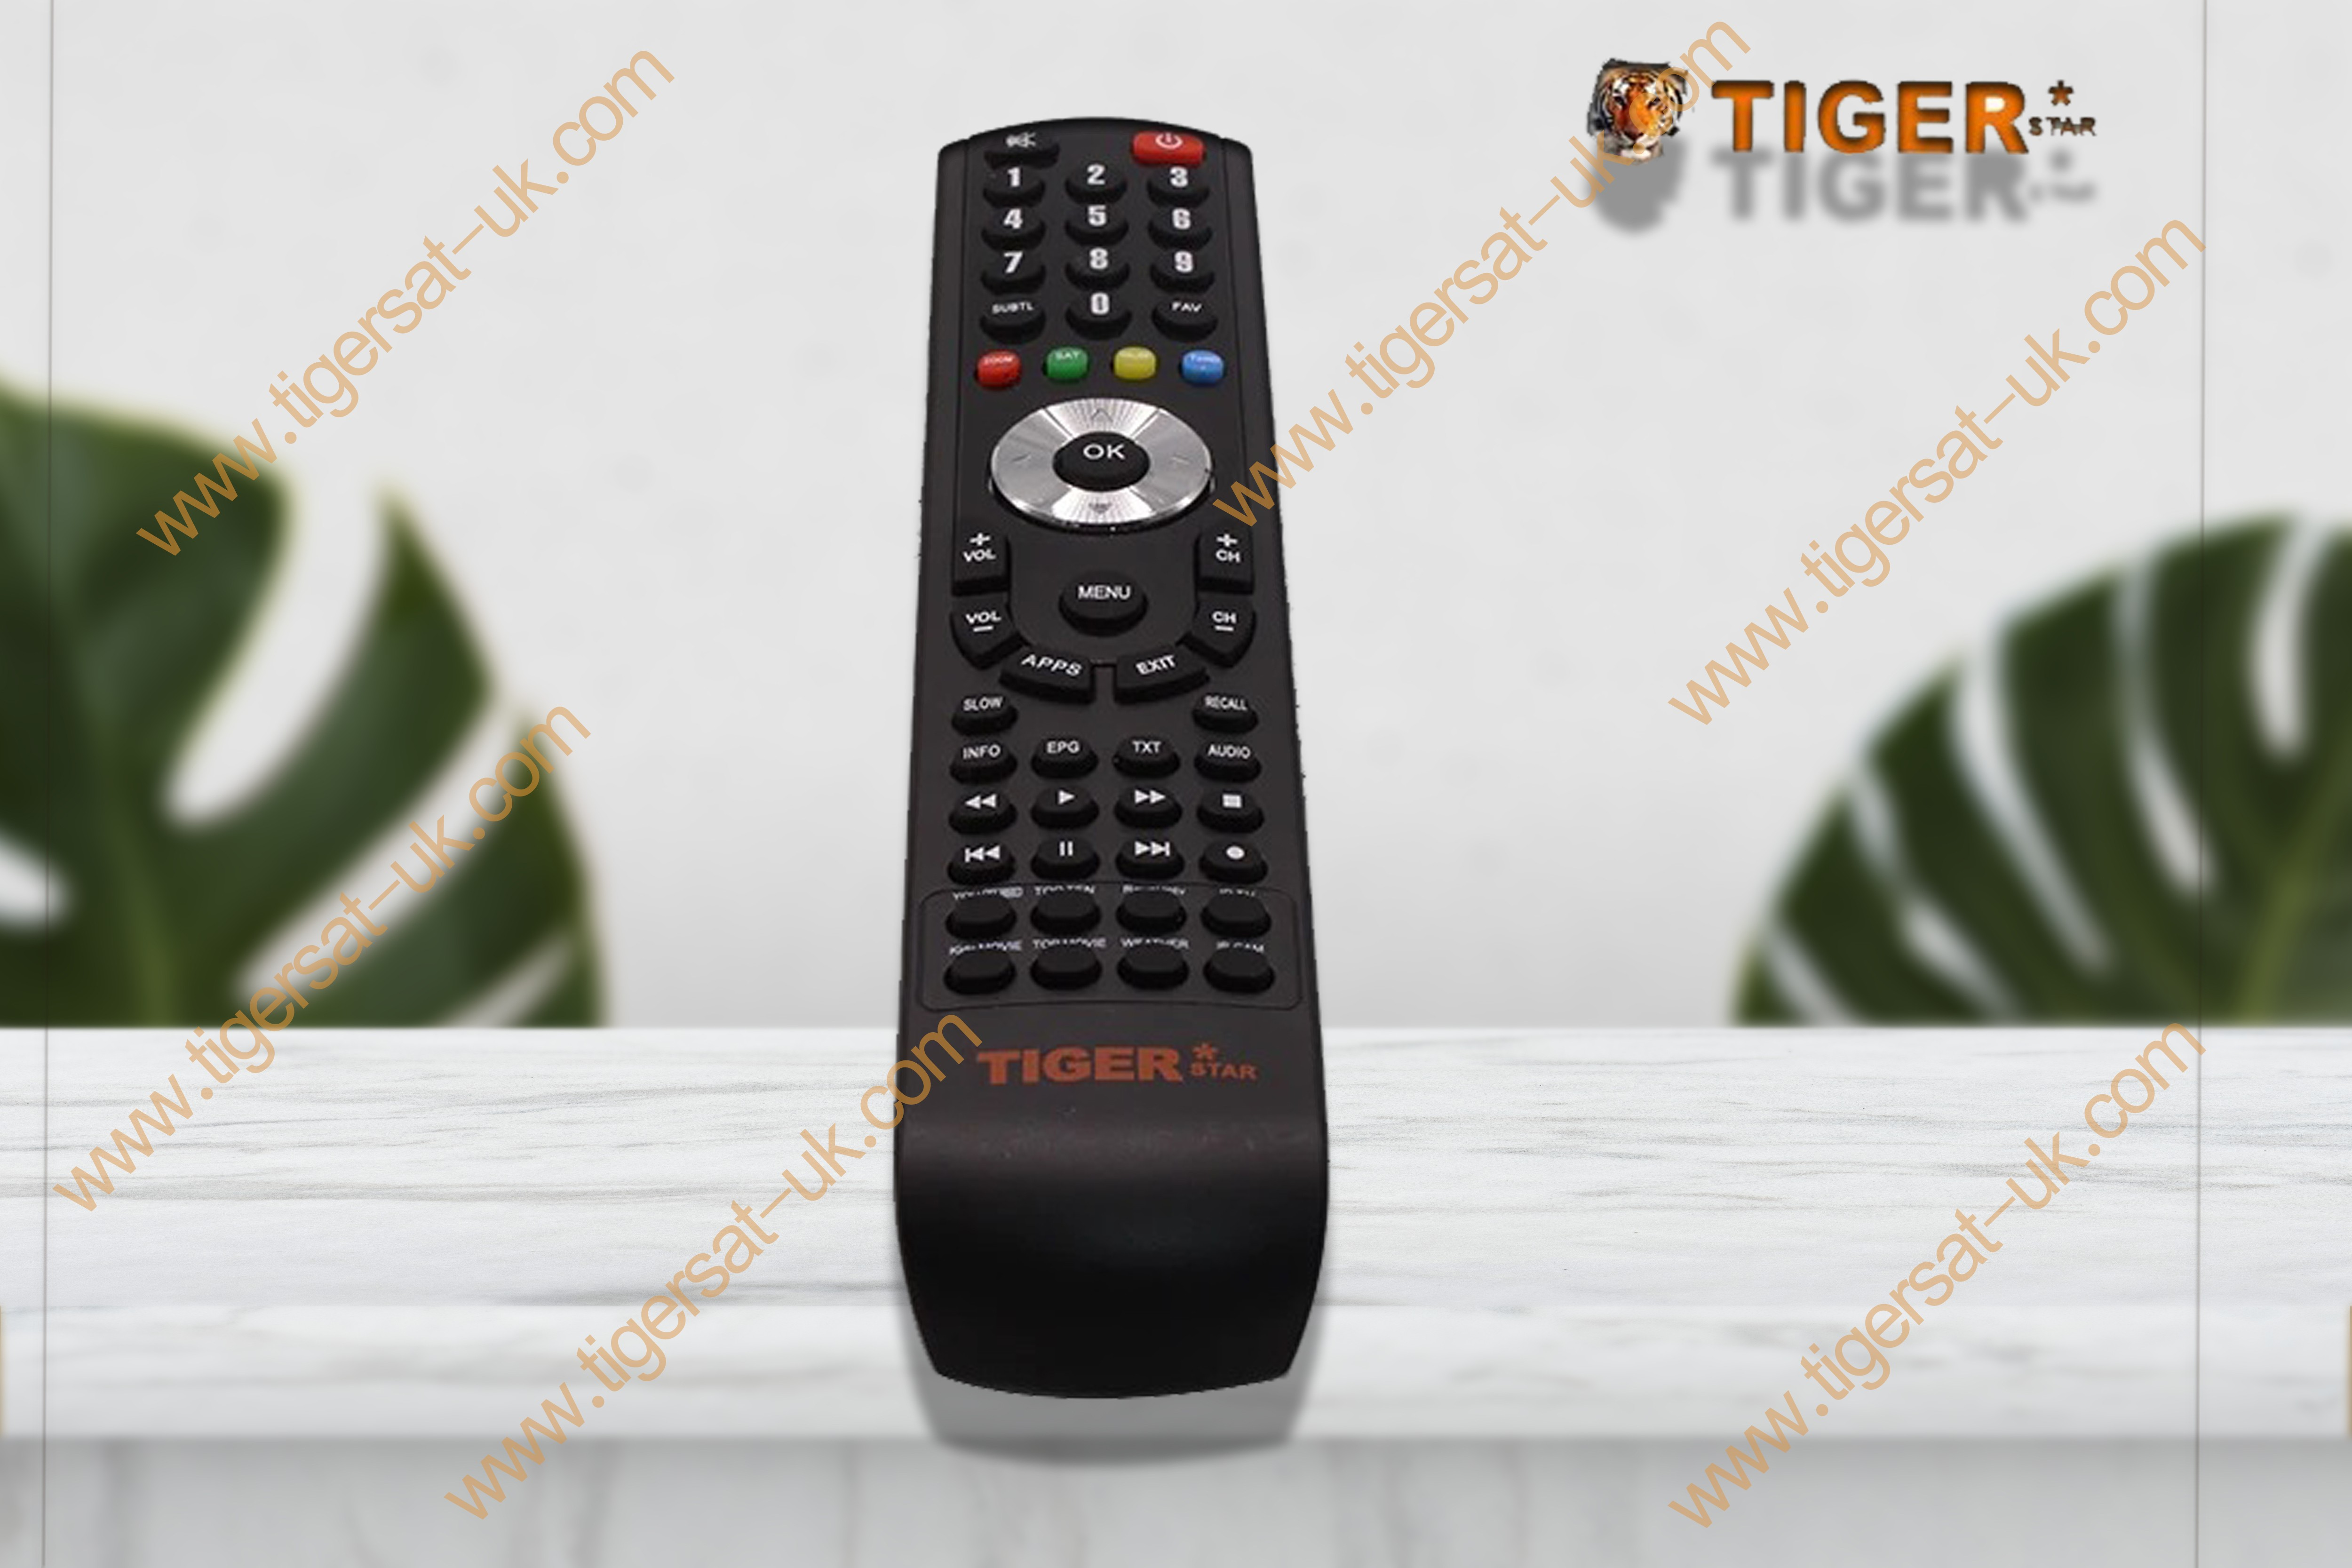 remote control for Tiger star all Z model